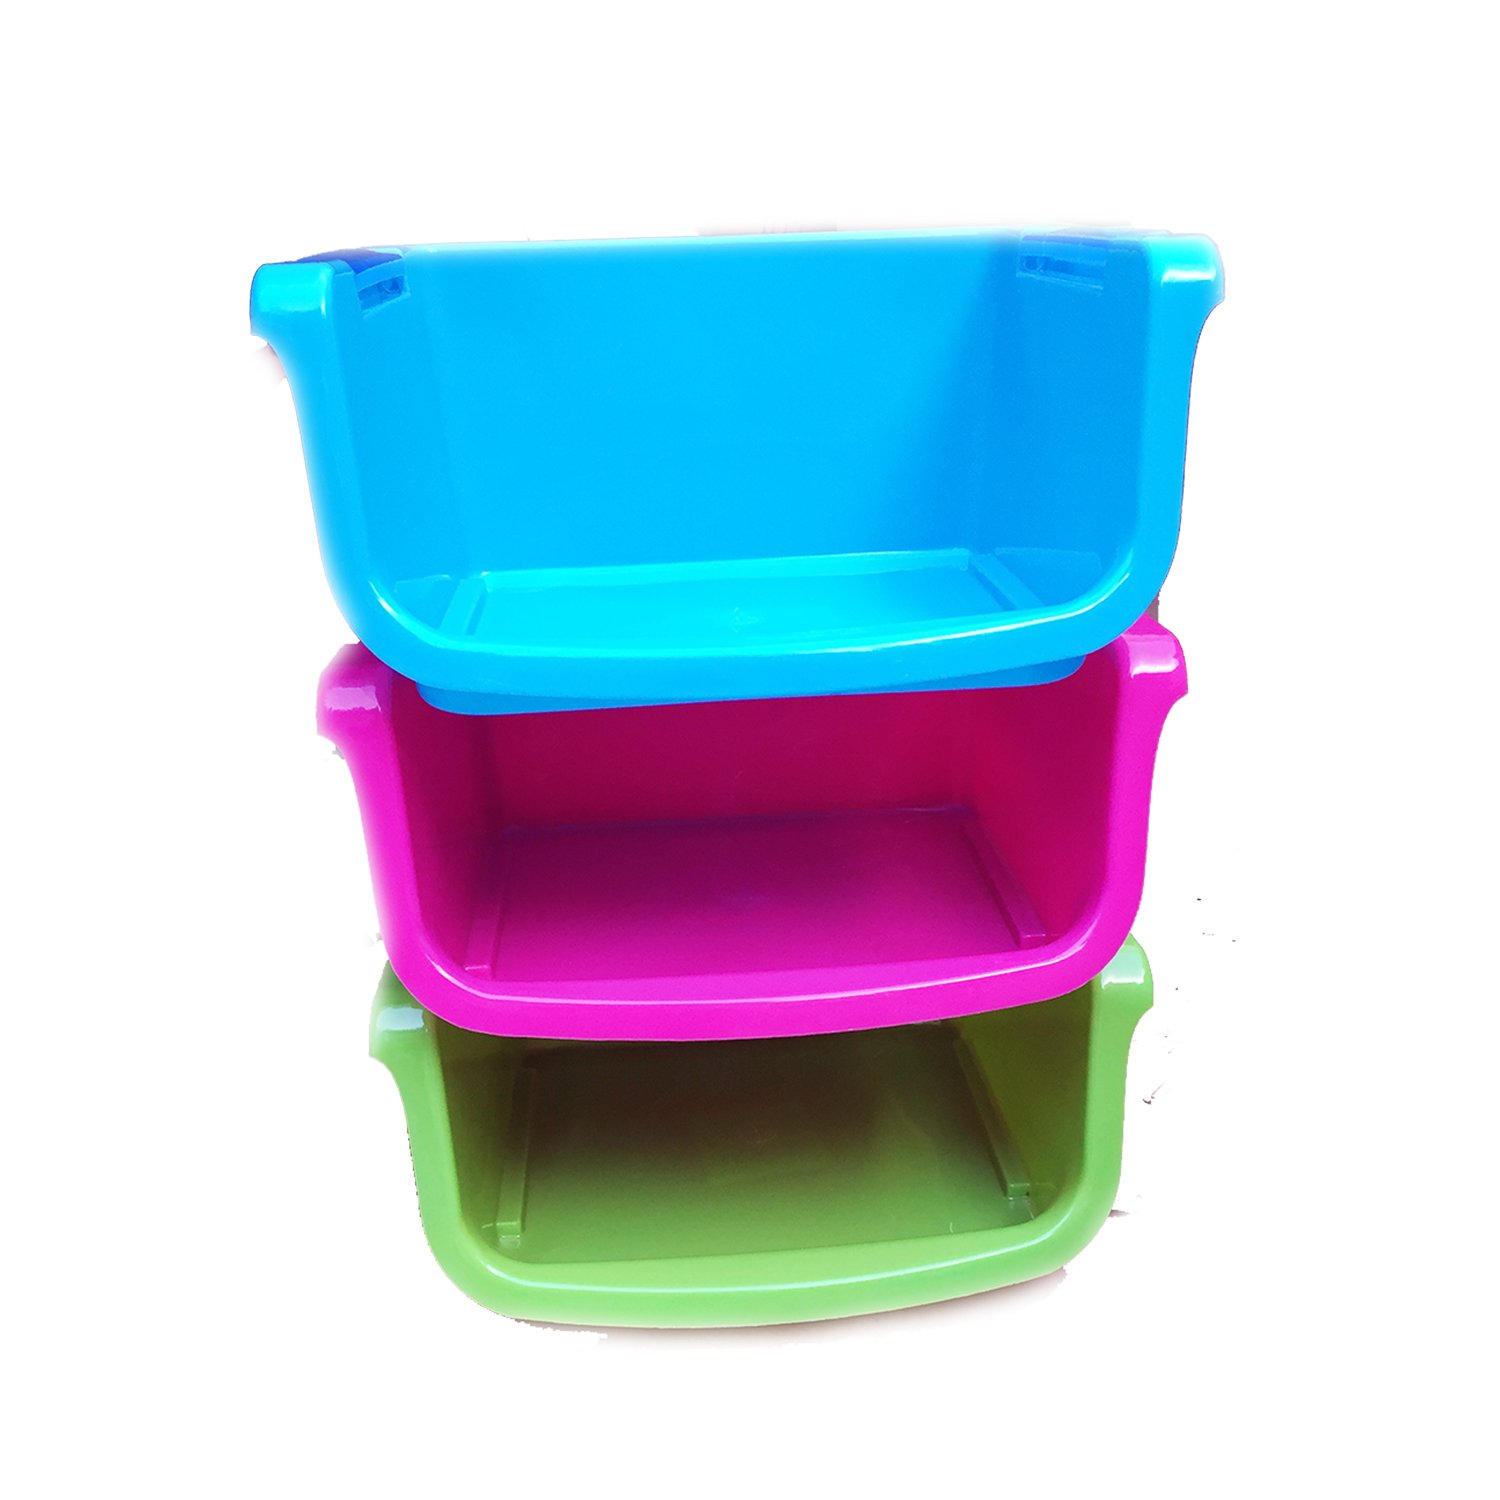 Stackable Storage Bins Stacking Book Bins for Classroom Plastic Small Organize Trays Organization Bin for Shelves Colorful Containers for Organizing Toys Set of 3 Pack